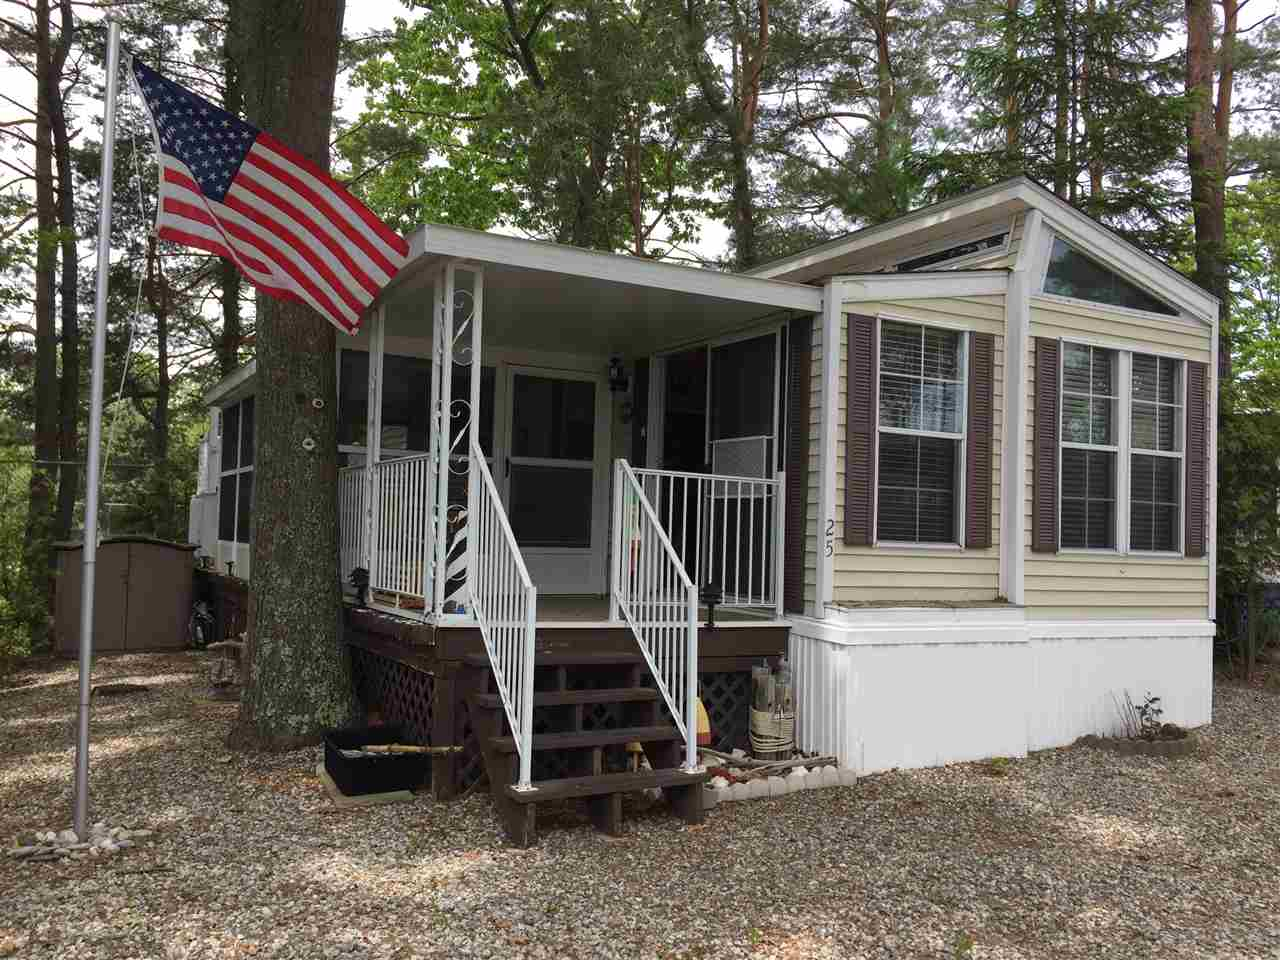 308 State Route 286 - Lot 25 Lot 25, Seabrook, NH 03874